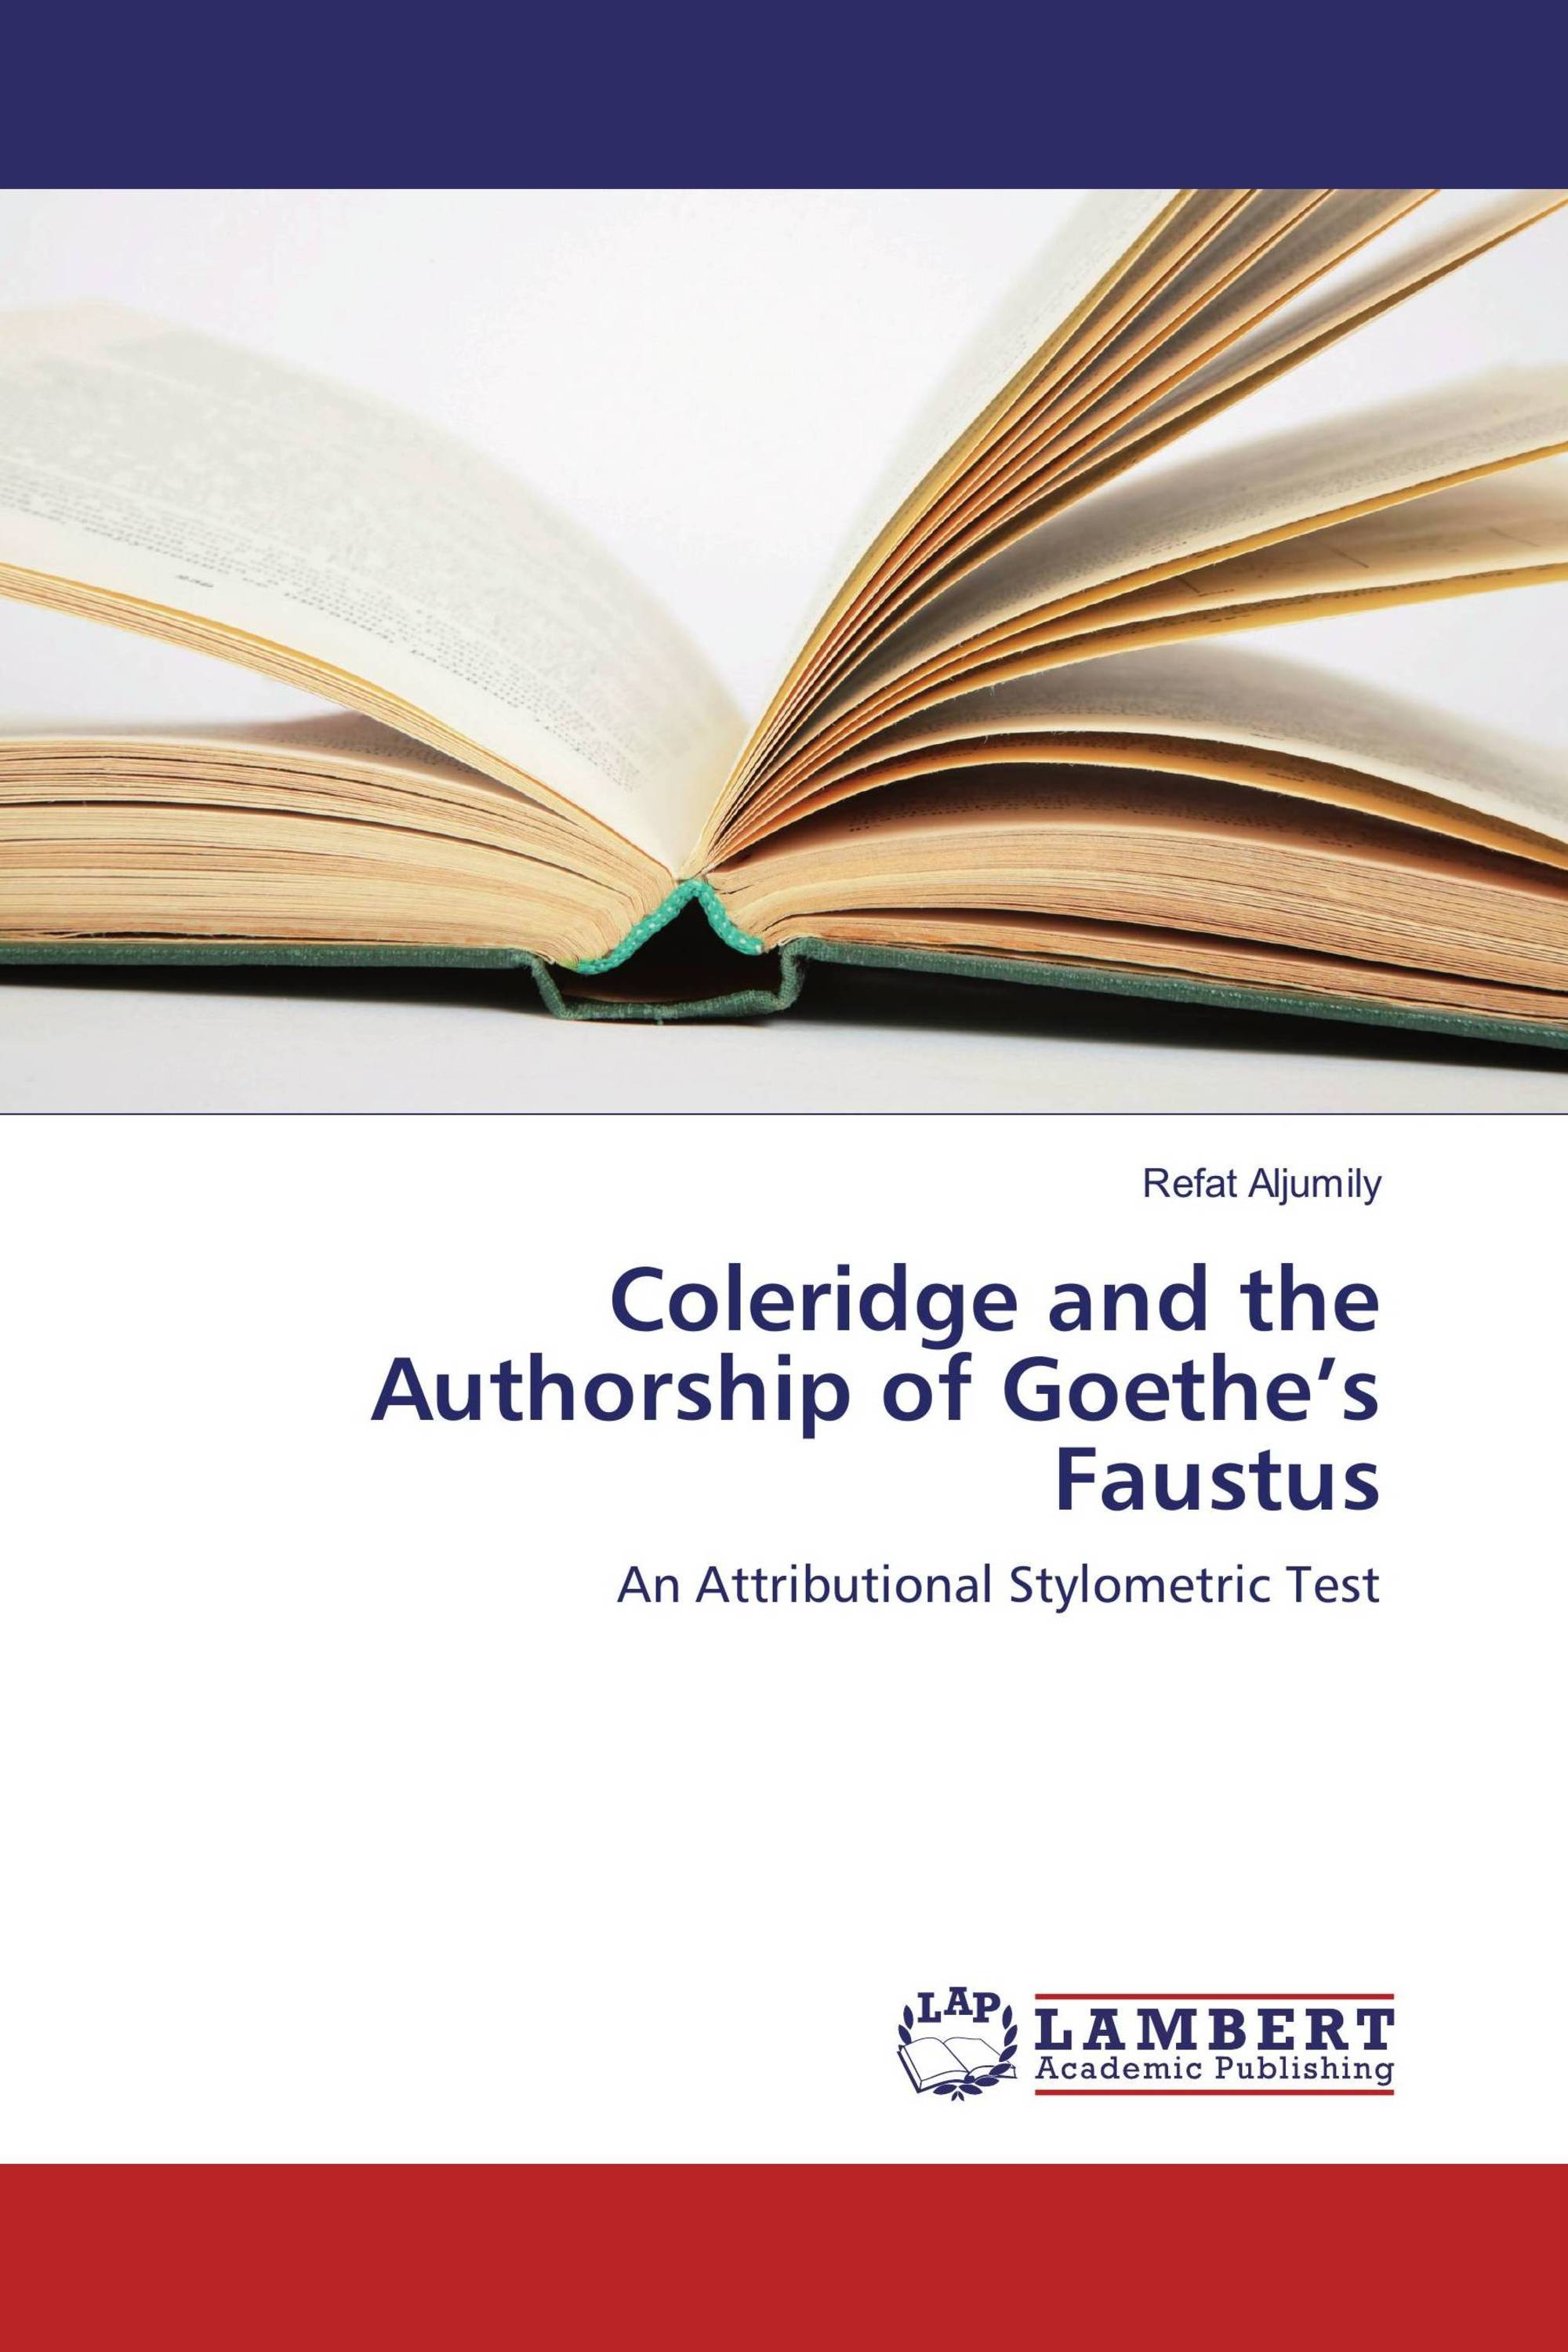 Coleridge and the Authorship of Goethe's Faustus